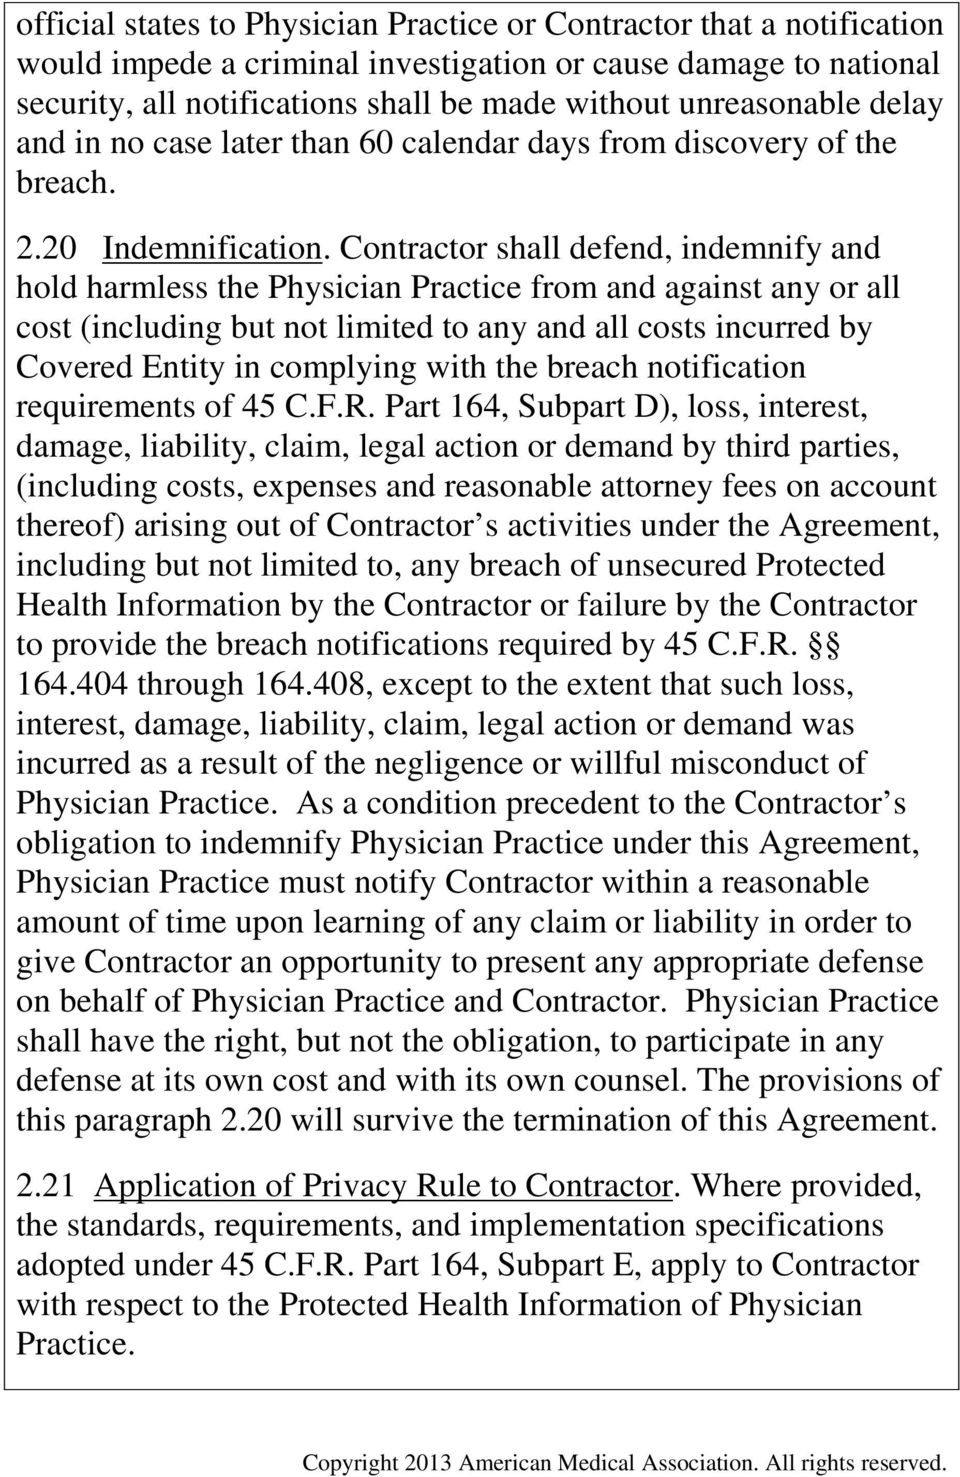 Contractor shall defend, indemnify and hold harmless the Physician Practice from and against any or all cost (including but not limited to any and all costs incurred by Covered Entity in complying